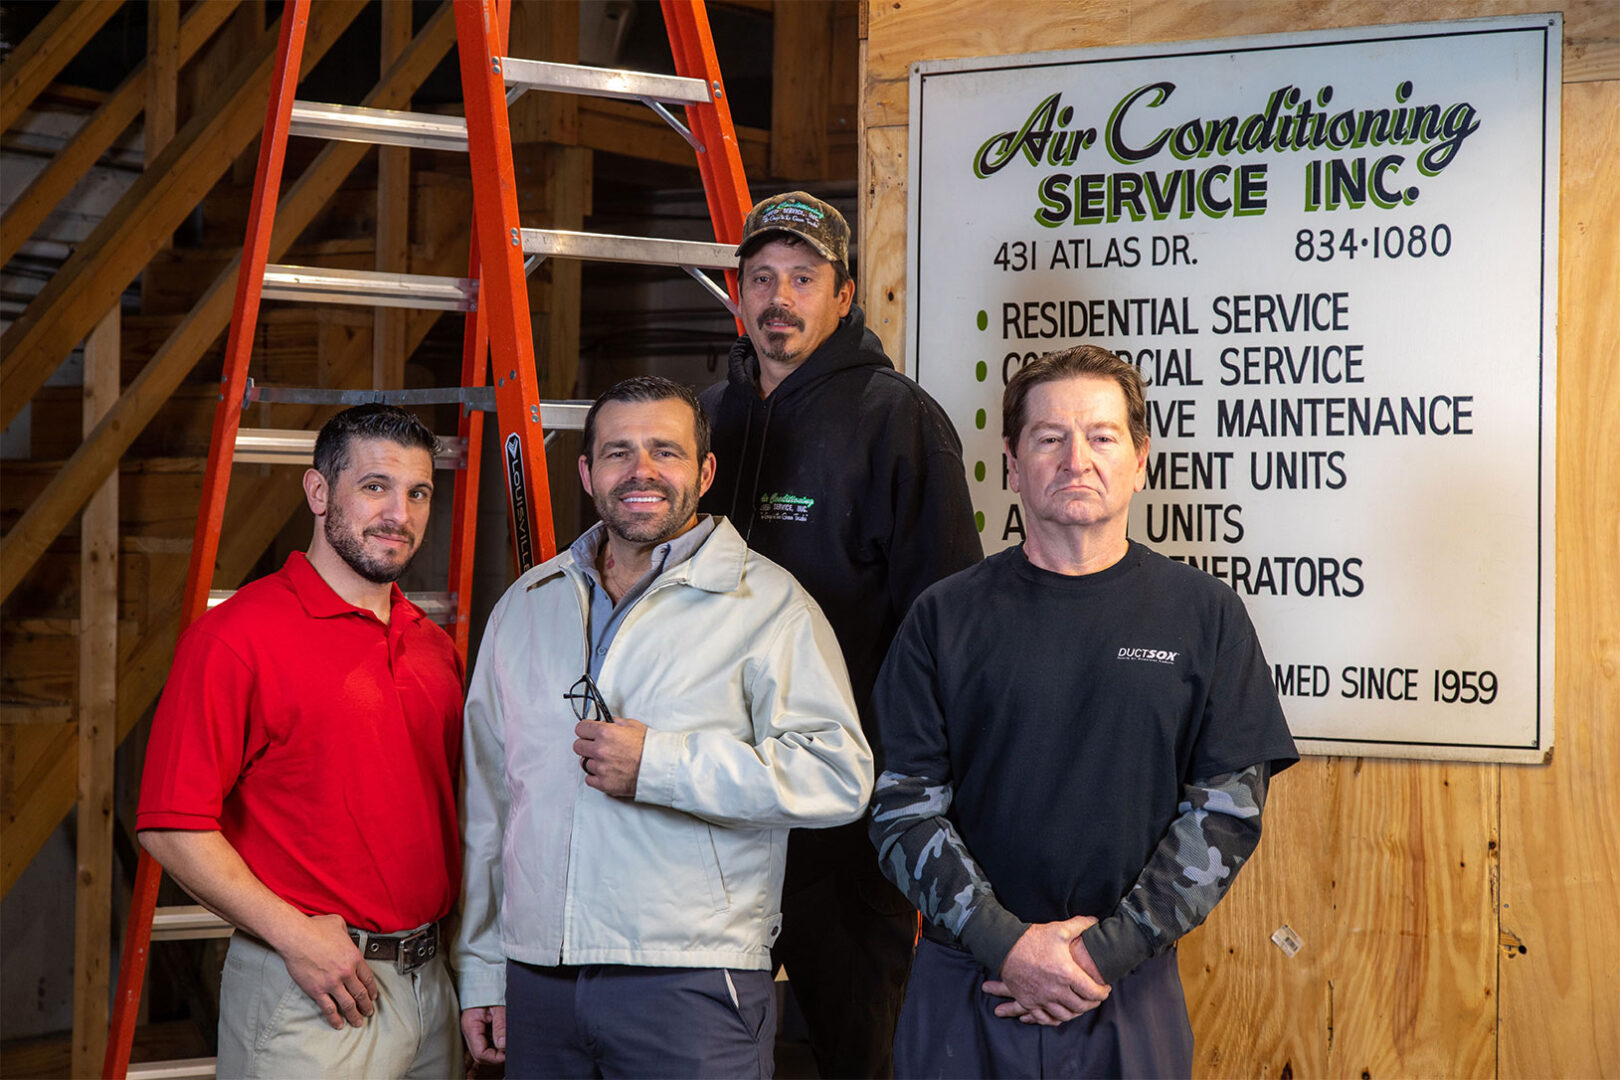 Team of HVAC Experts at Nashville Air Conditioning Service for heating and air conditioning